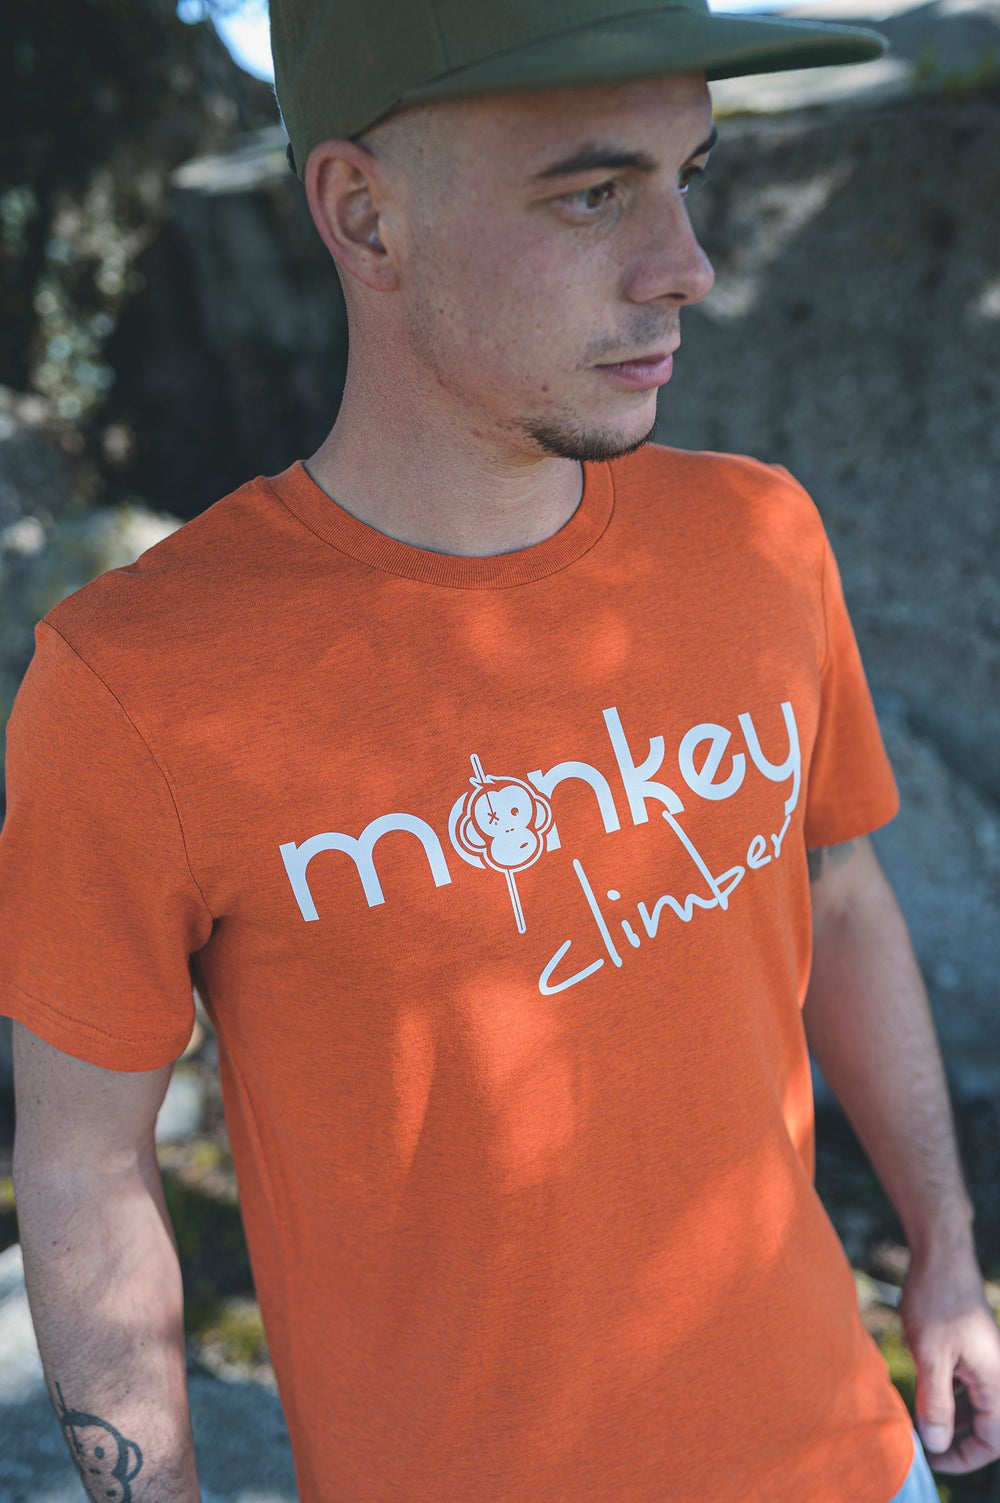 Image of Monkey Climber Front Cover shirt I Rust